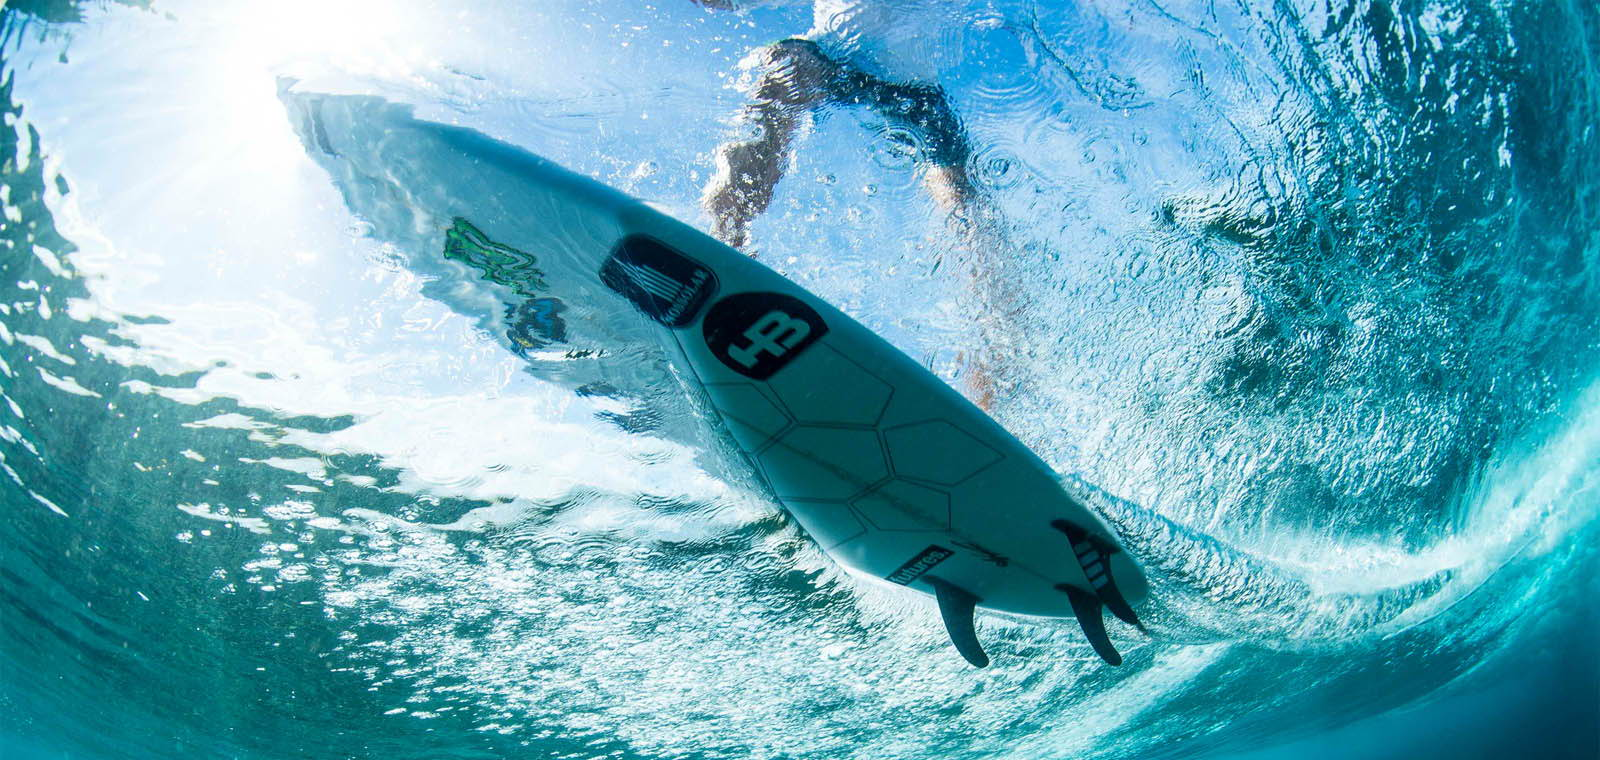 Surfboard fins explained